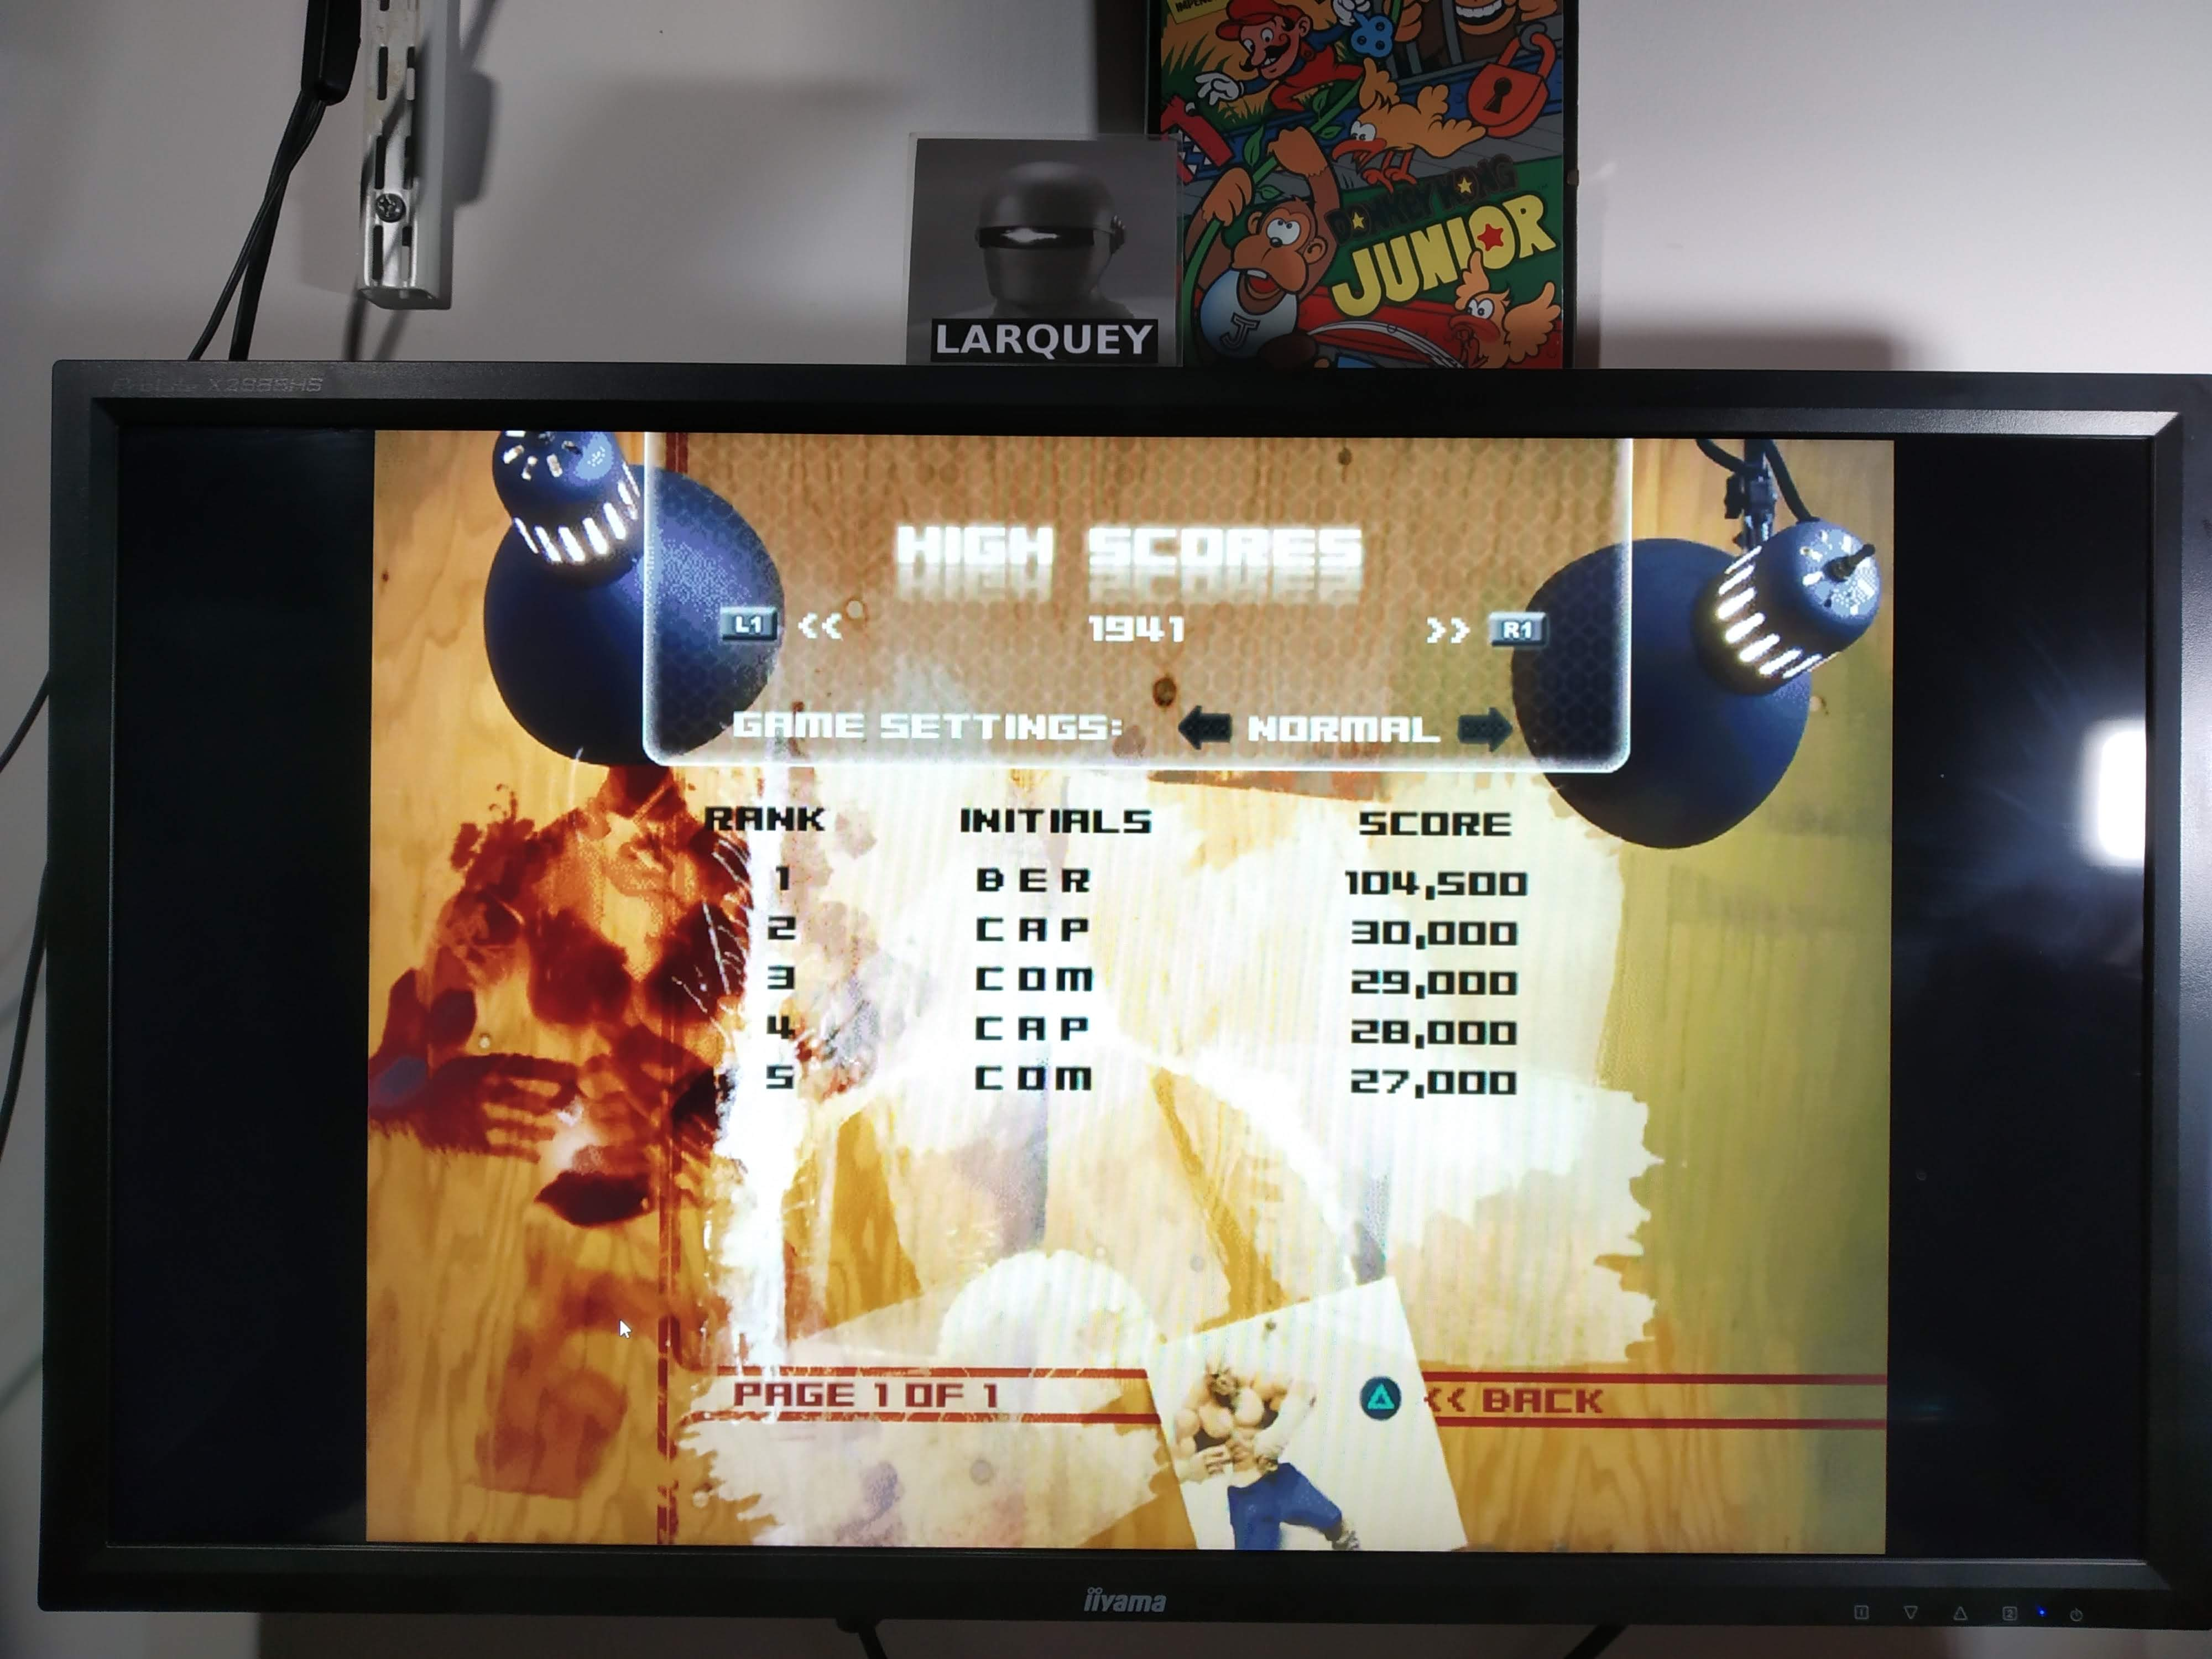 Larquey: Capcom Classics Vol 2: 1941 Counter Attack [Normal] (Playstation 2 Emulated) 104,500 points on 2020-08-01 11:23:45